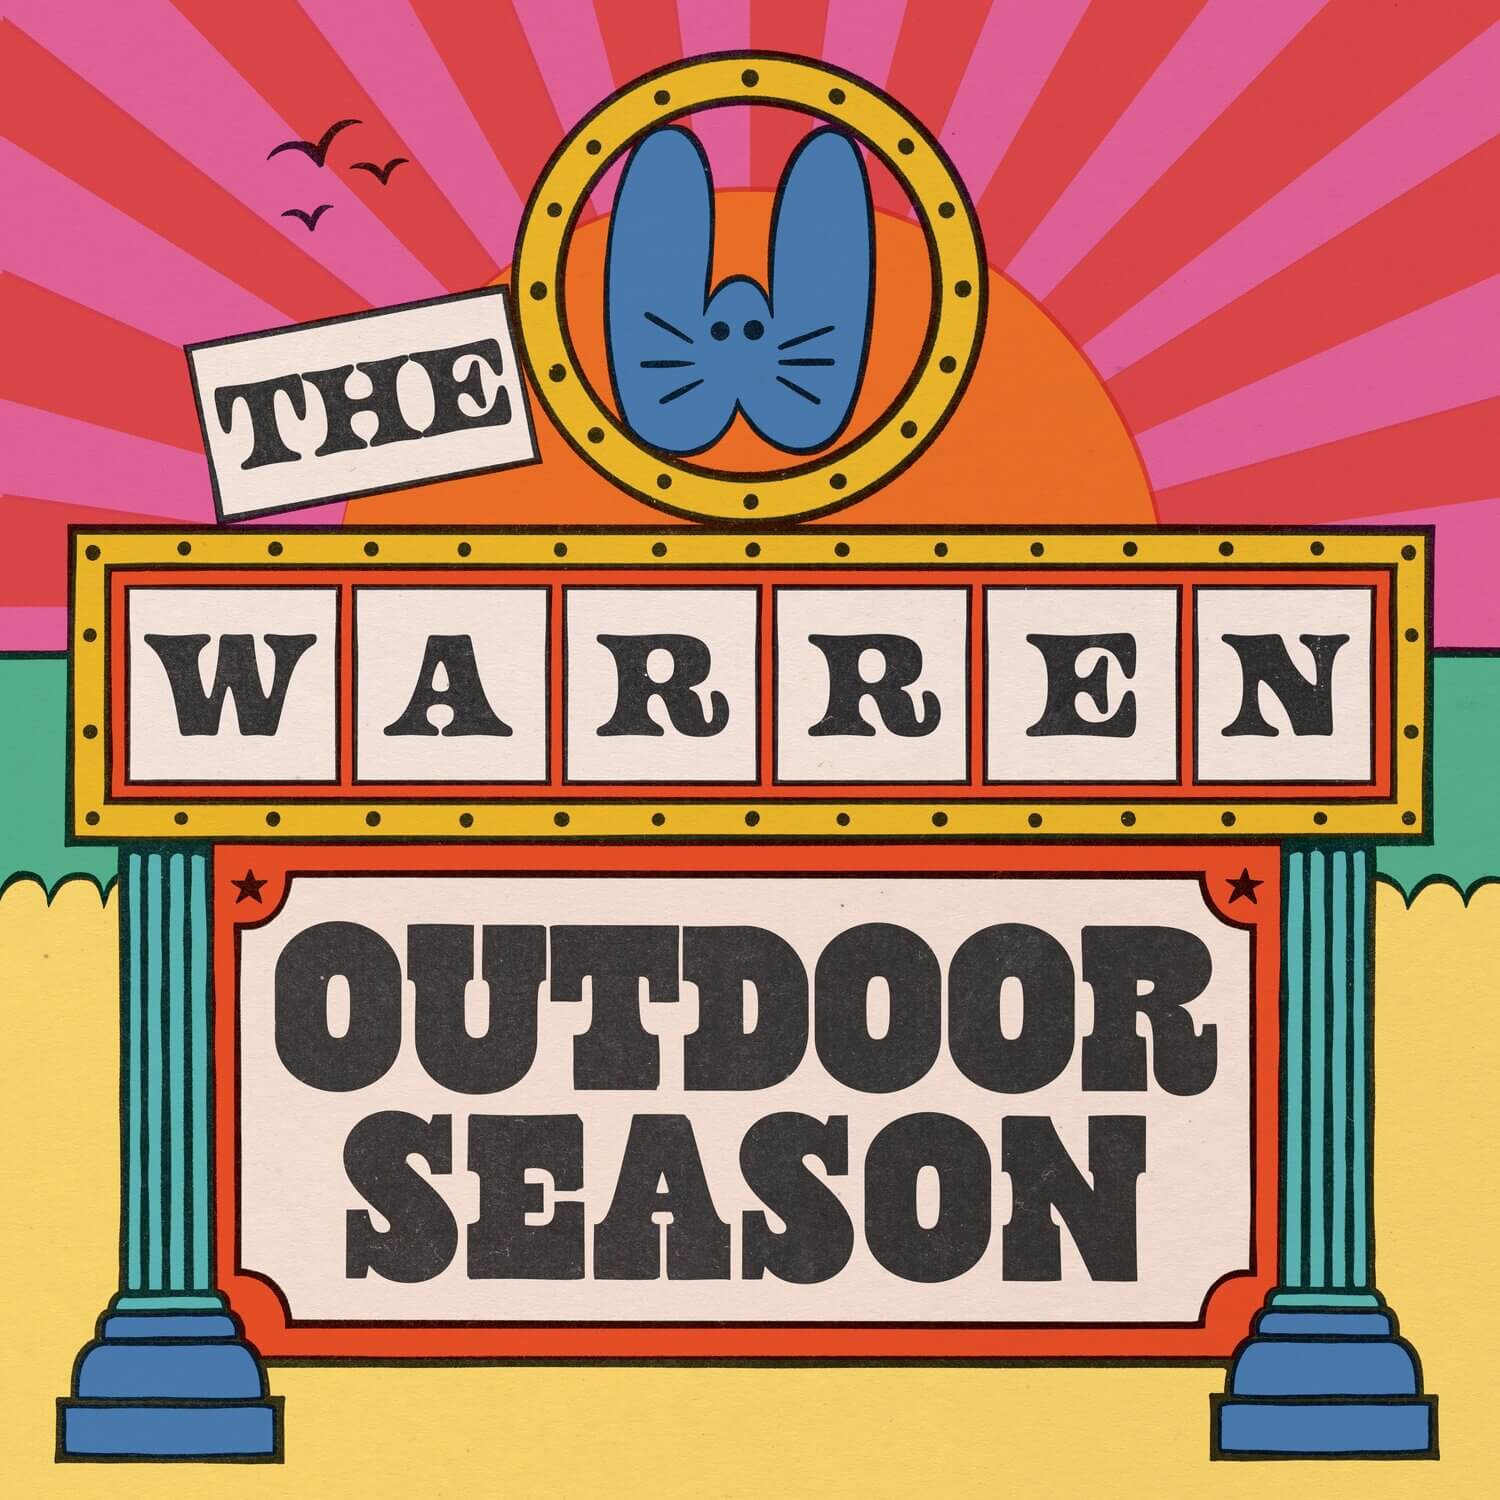 The Warren Outdoor Season